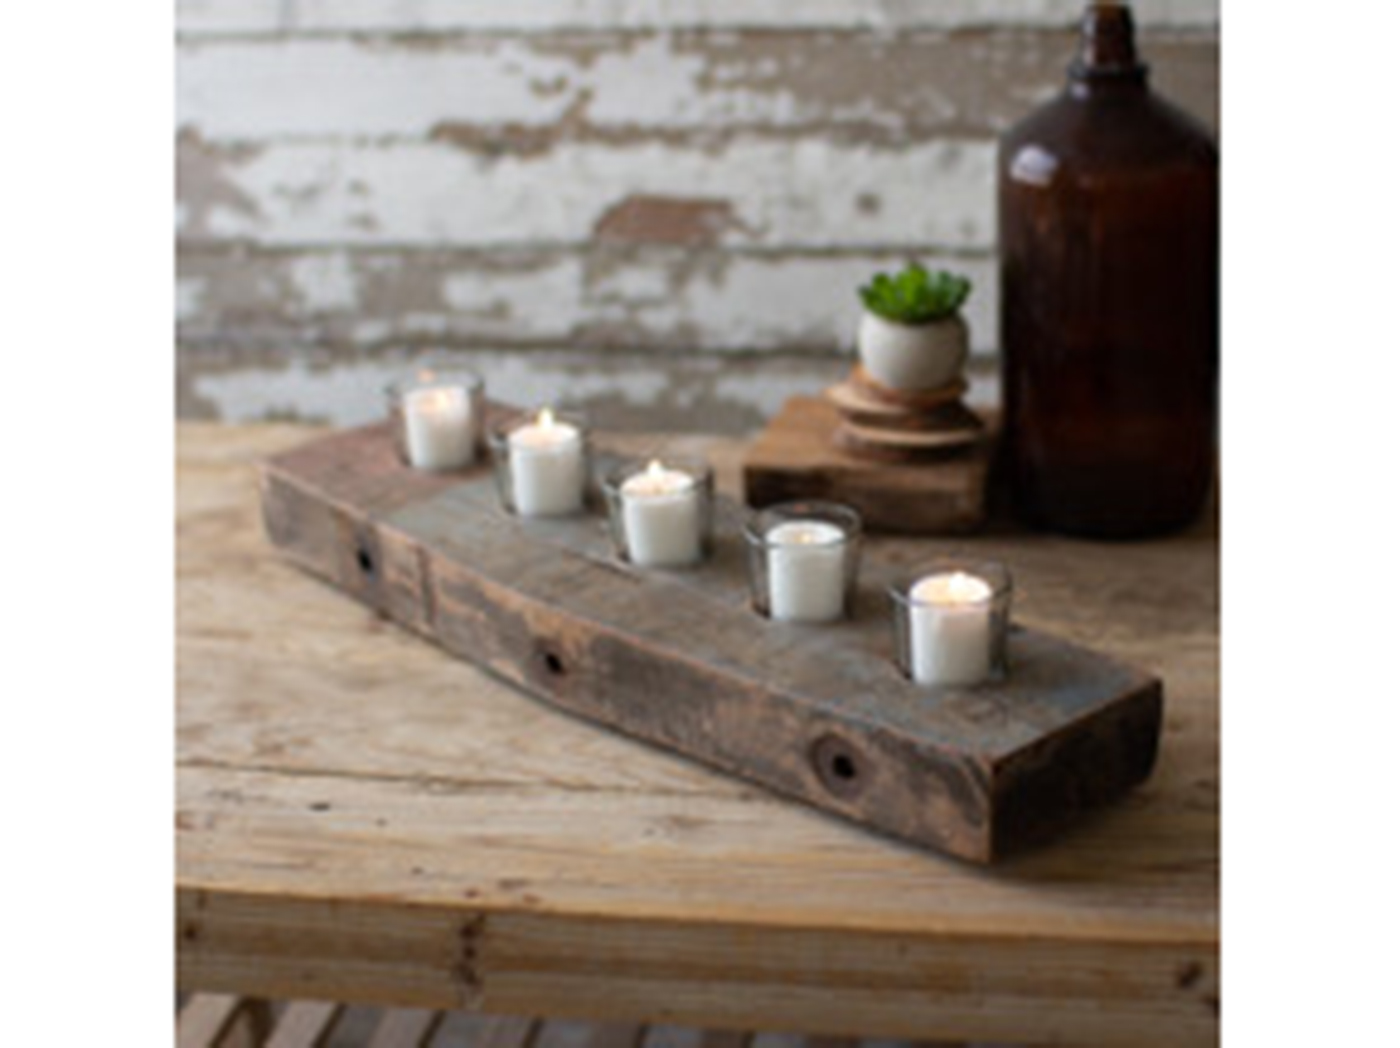 "5 Light Recycled Wood Beam Candleholder 6.5""W x 22.5""L"